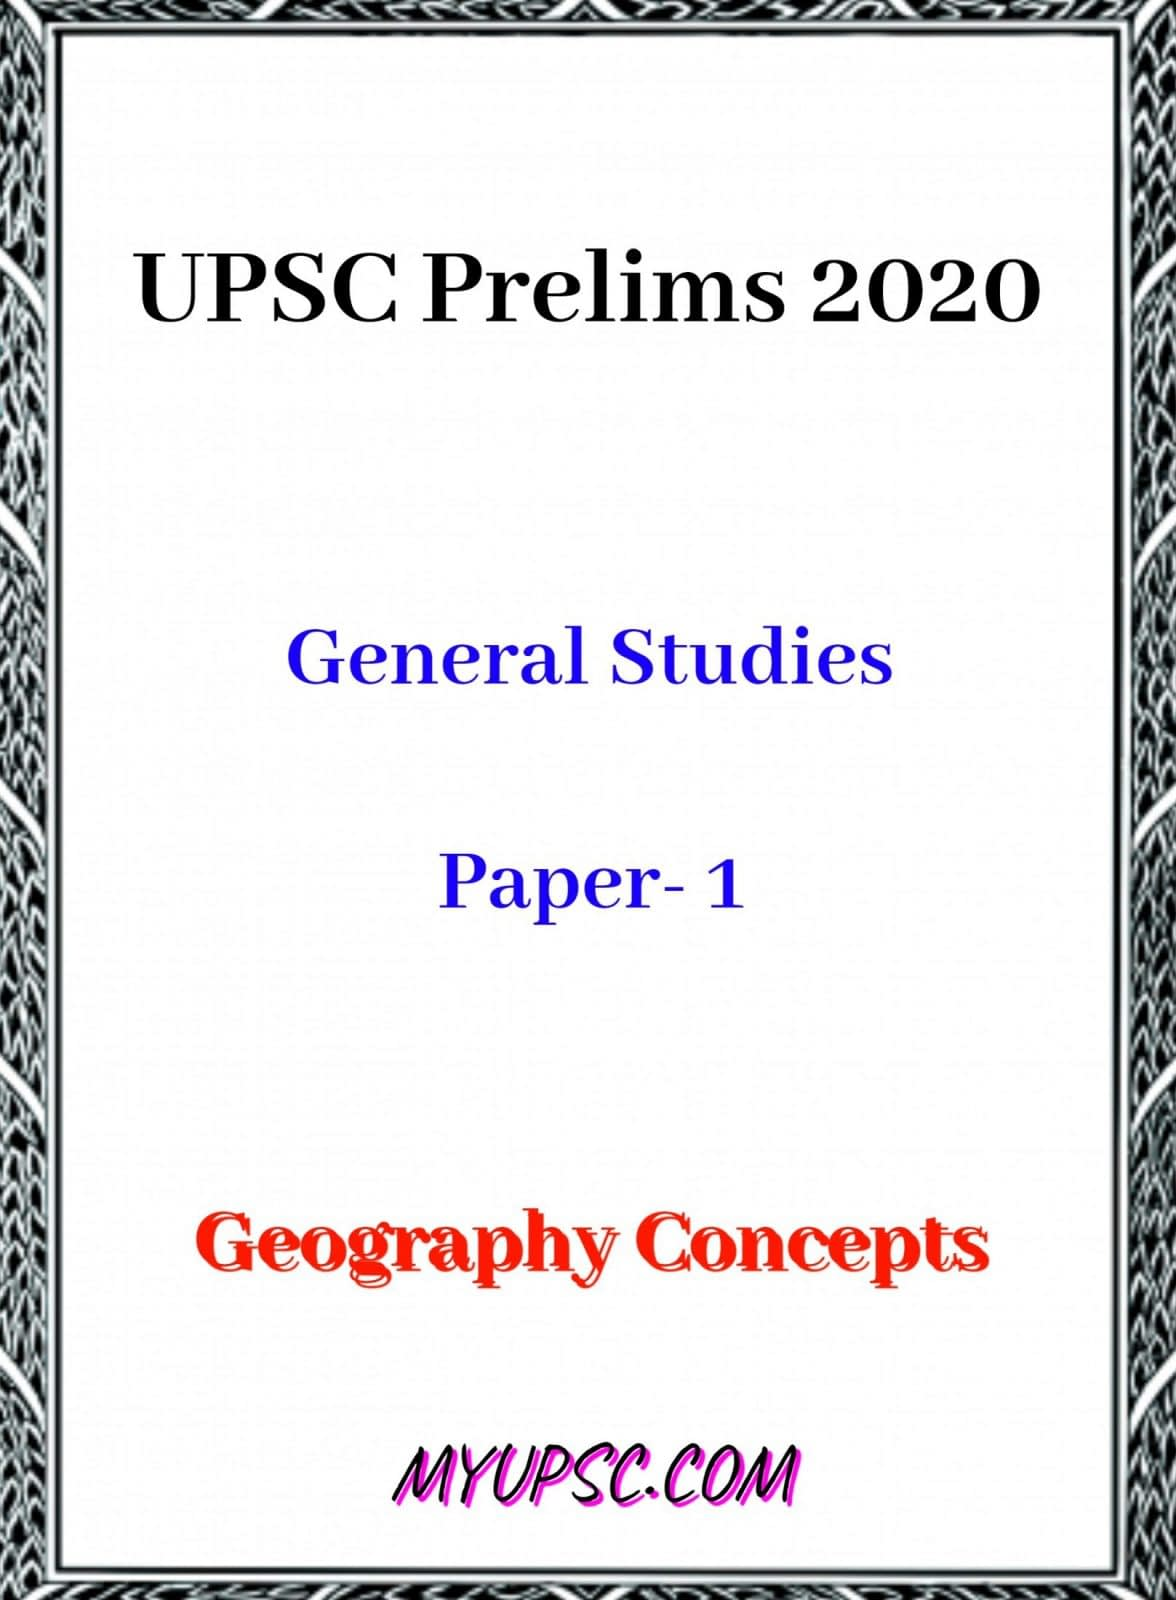 UPSC Prelims 2020: Basic Geography Concepts